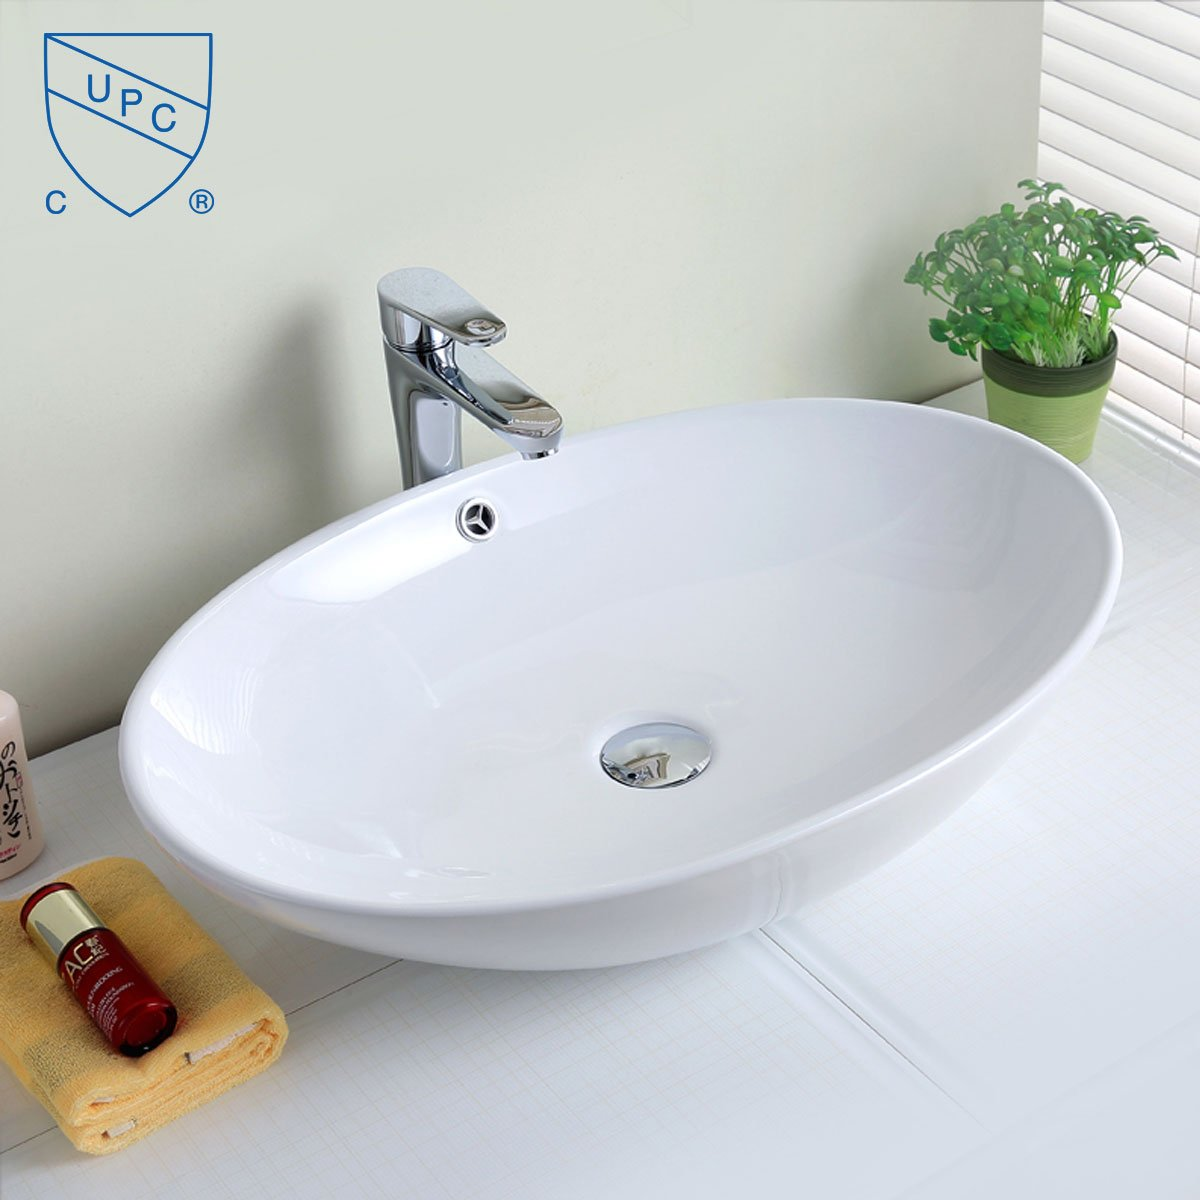 Modern Oval Porcelain Above Counter White Ceramic Bathroom Vessel Sink E-CL-1164